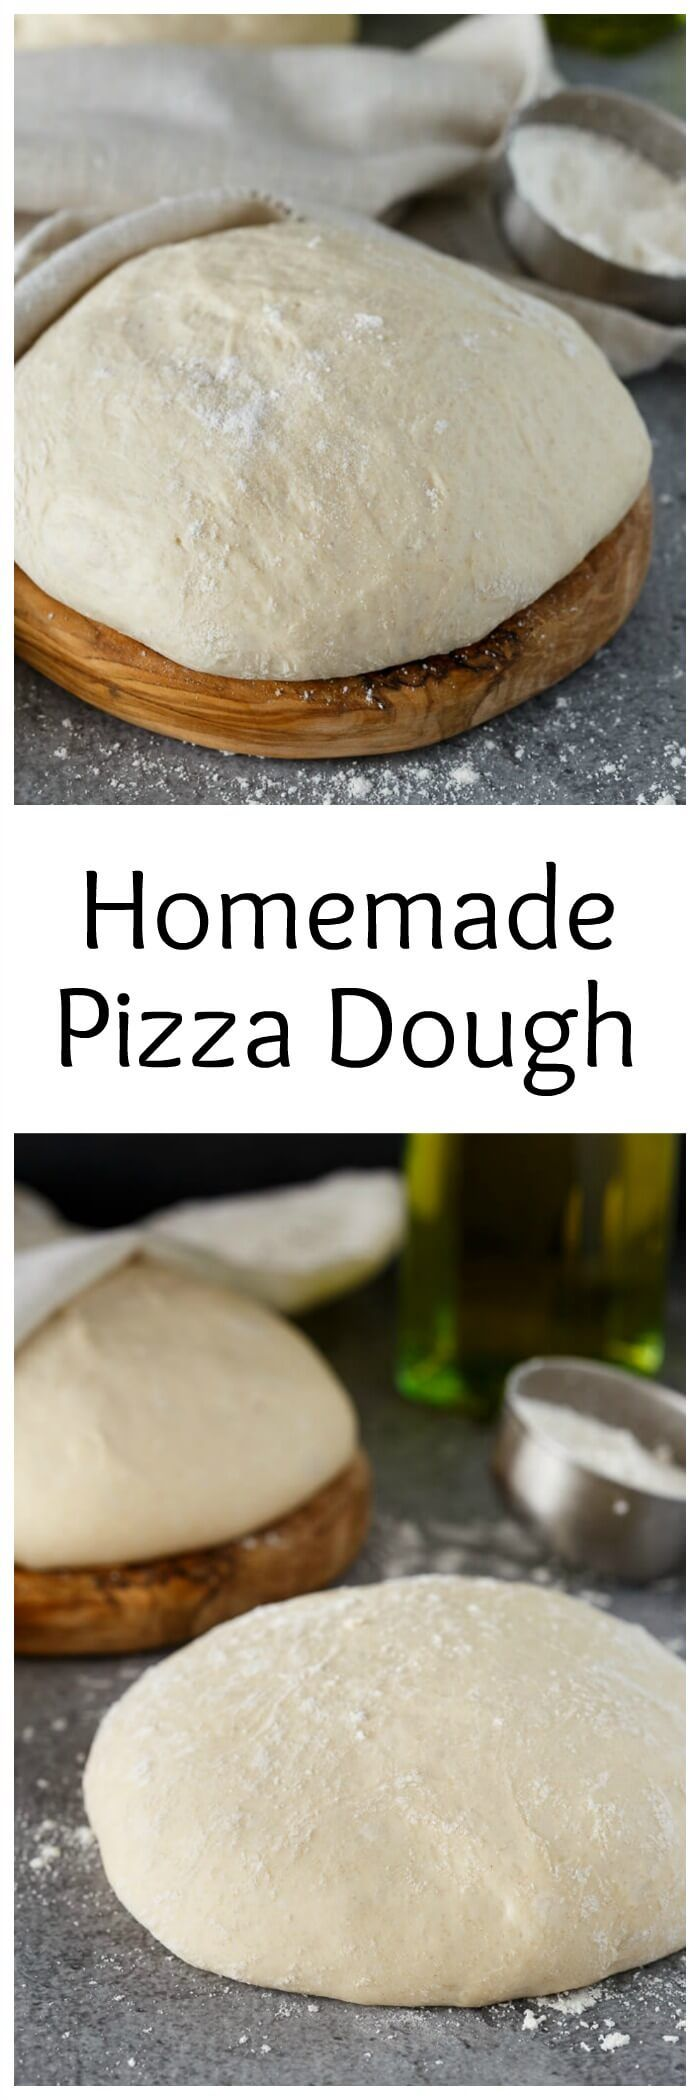 215 best pizza images on Pinterest | Cooking recipes, Baking breads ...